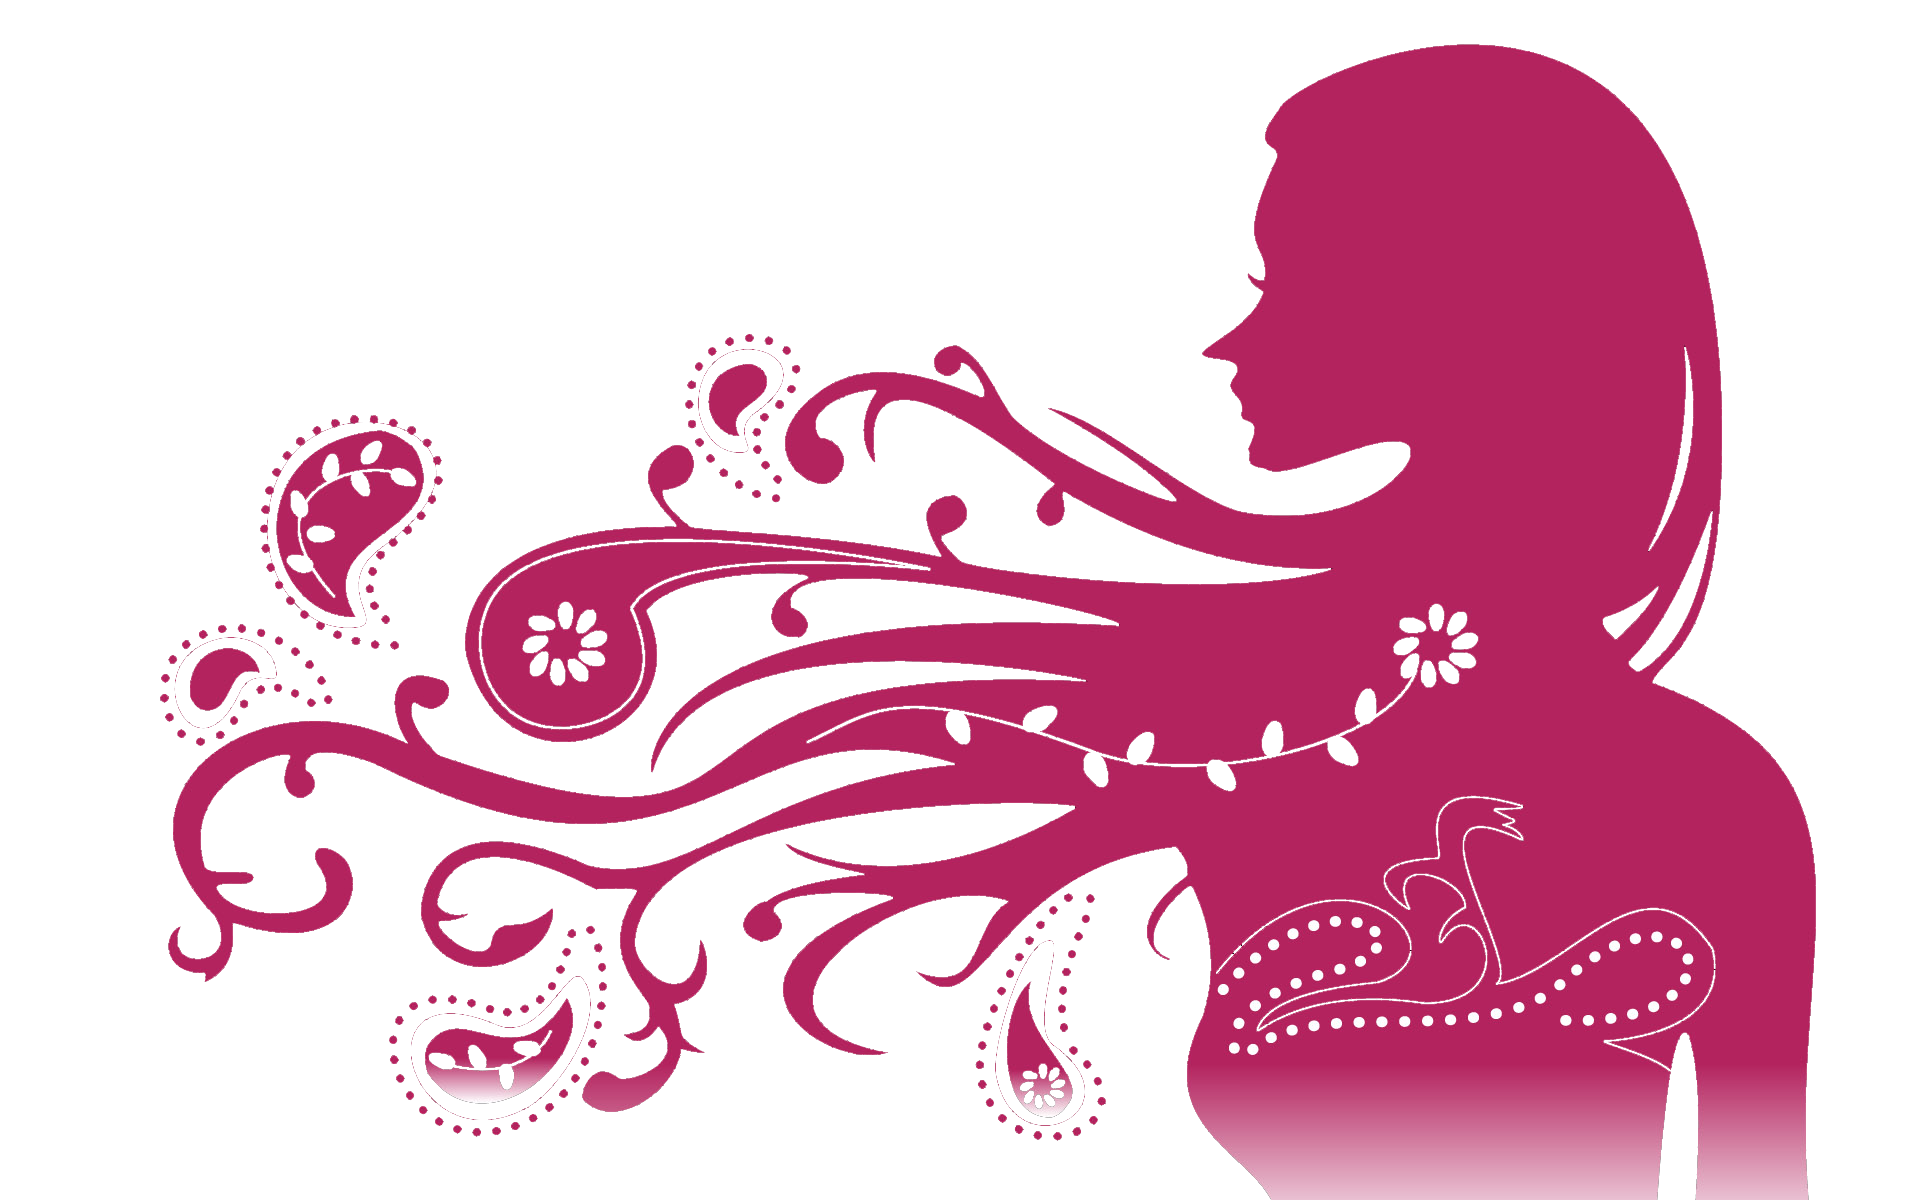 Mujer rosas png. Kisspng female silhouette woman